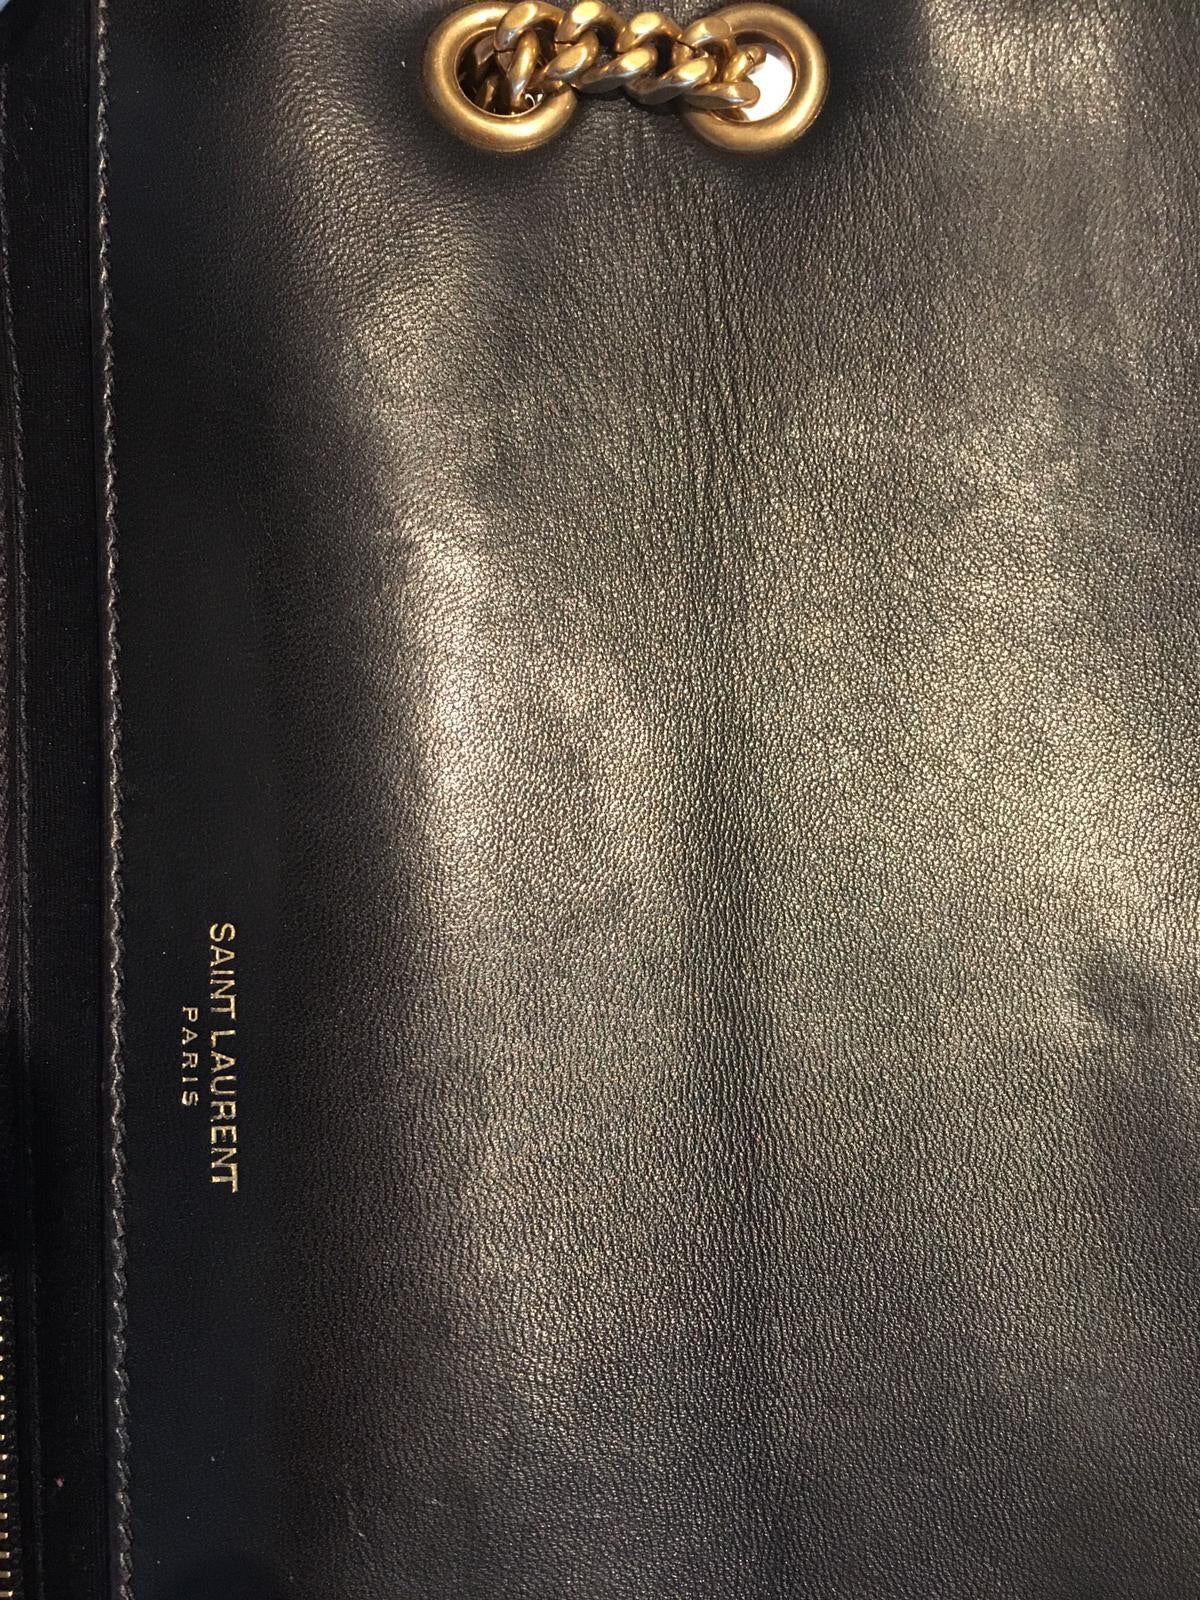 Saint Laurent Jamie Chain Wallet - Iconics Preloved Luxury